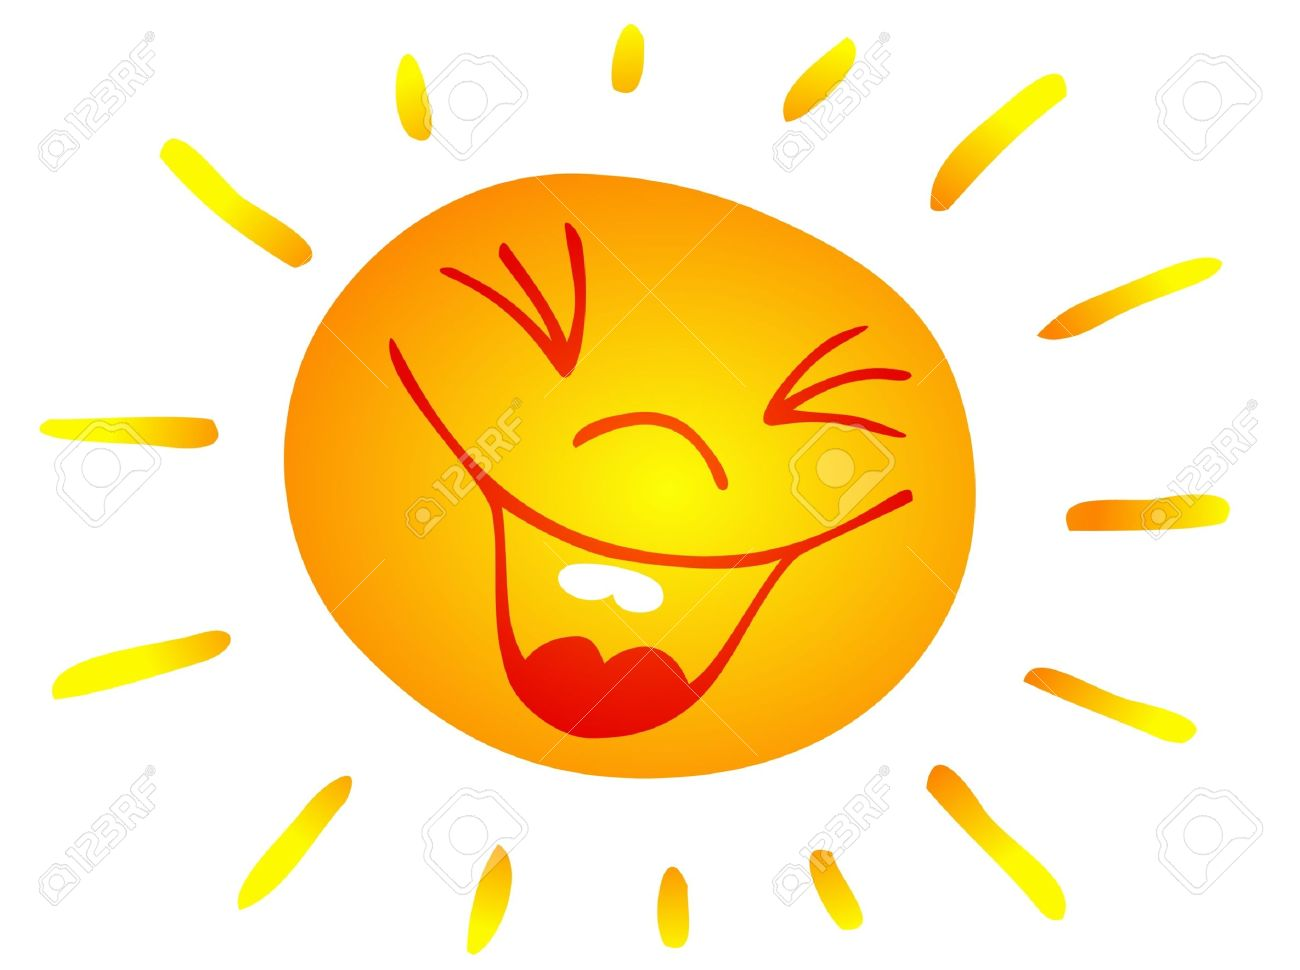 Clip Art Illustration Of A Smiling Sun Free Cliparts